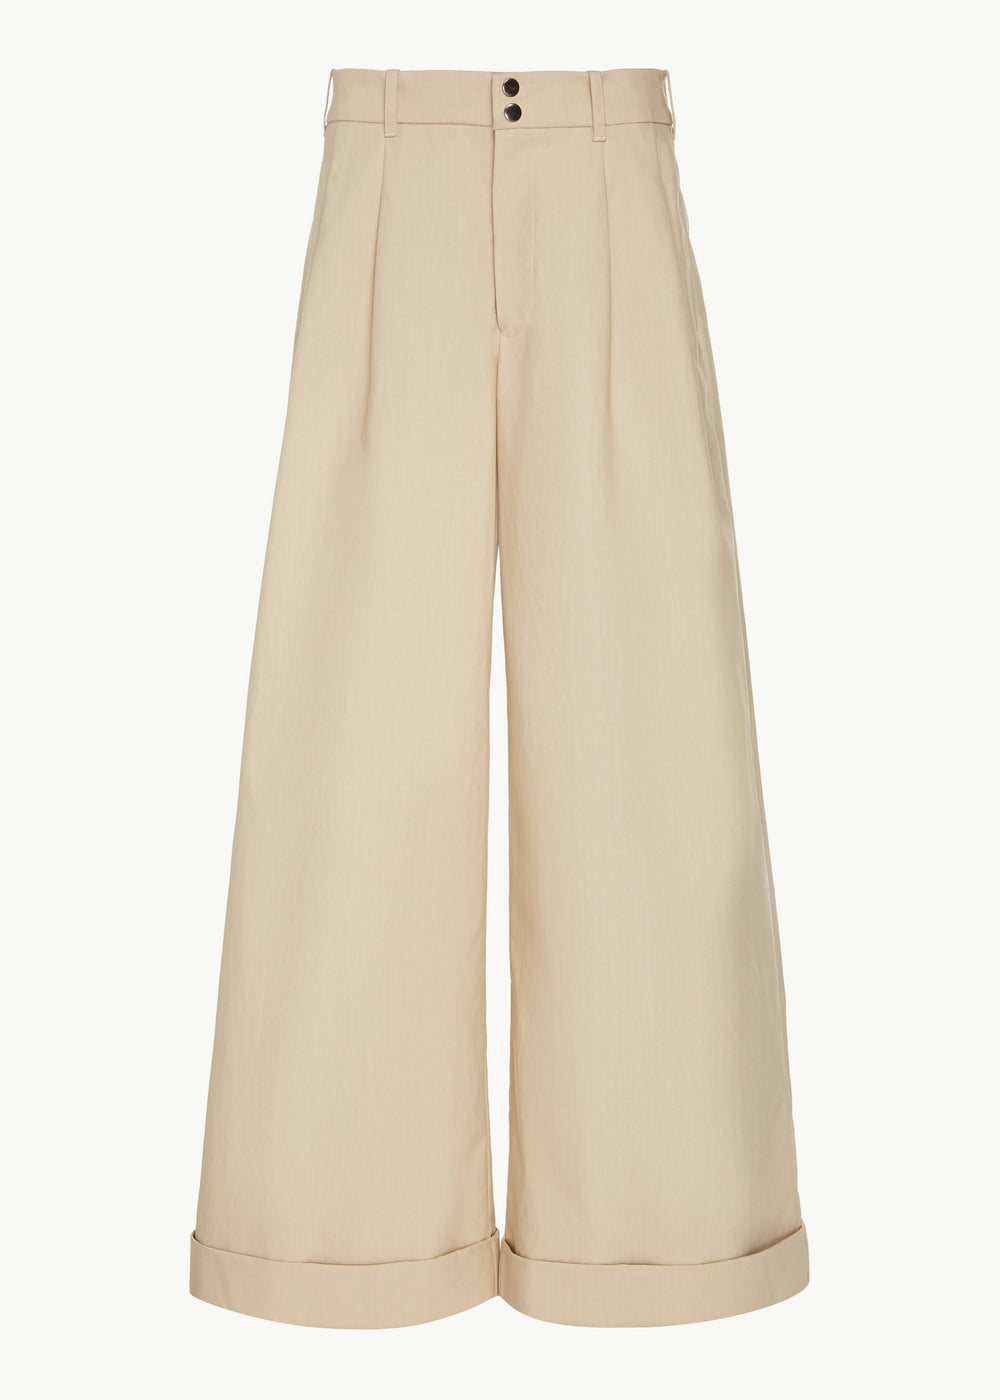 Wide Leg Trouser in Bonded Cotton Poplin - Sand - CO